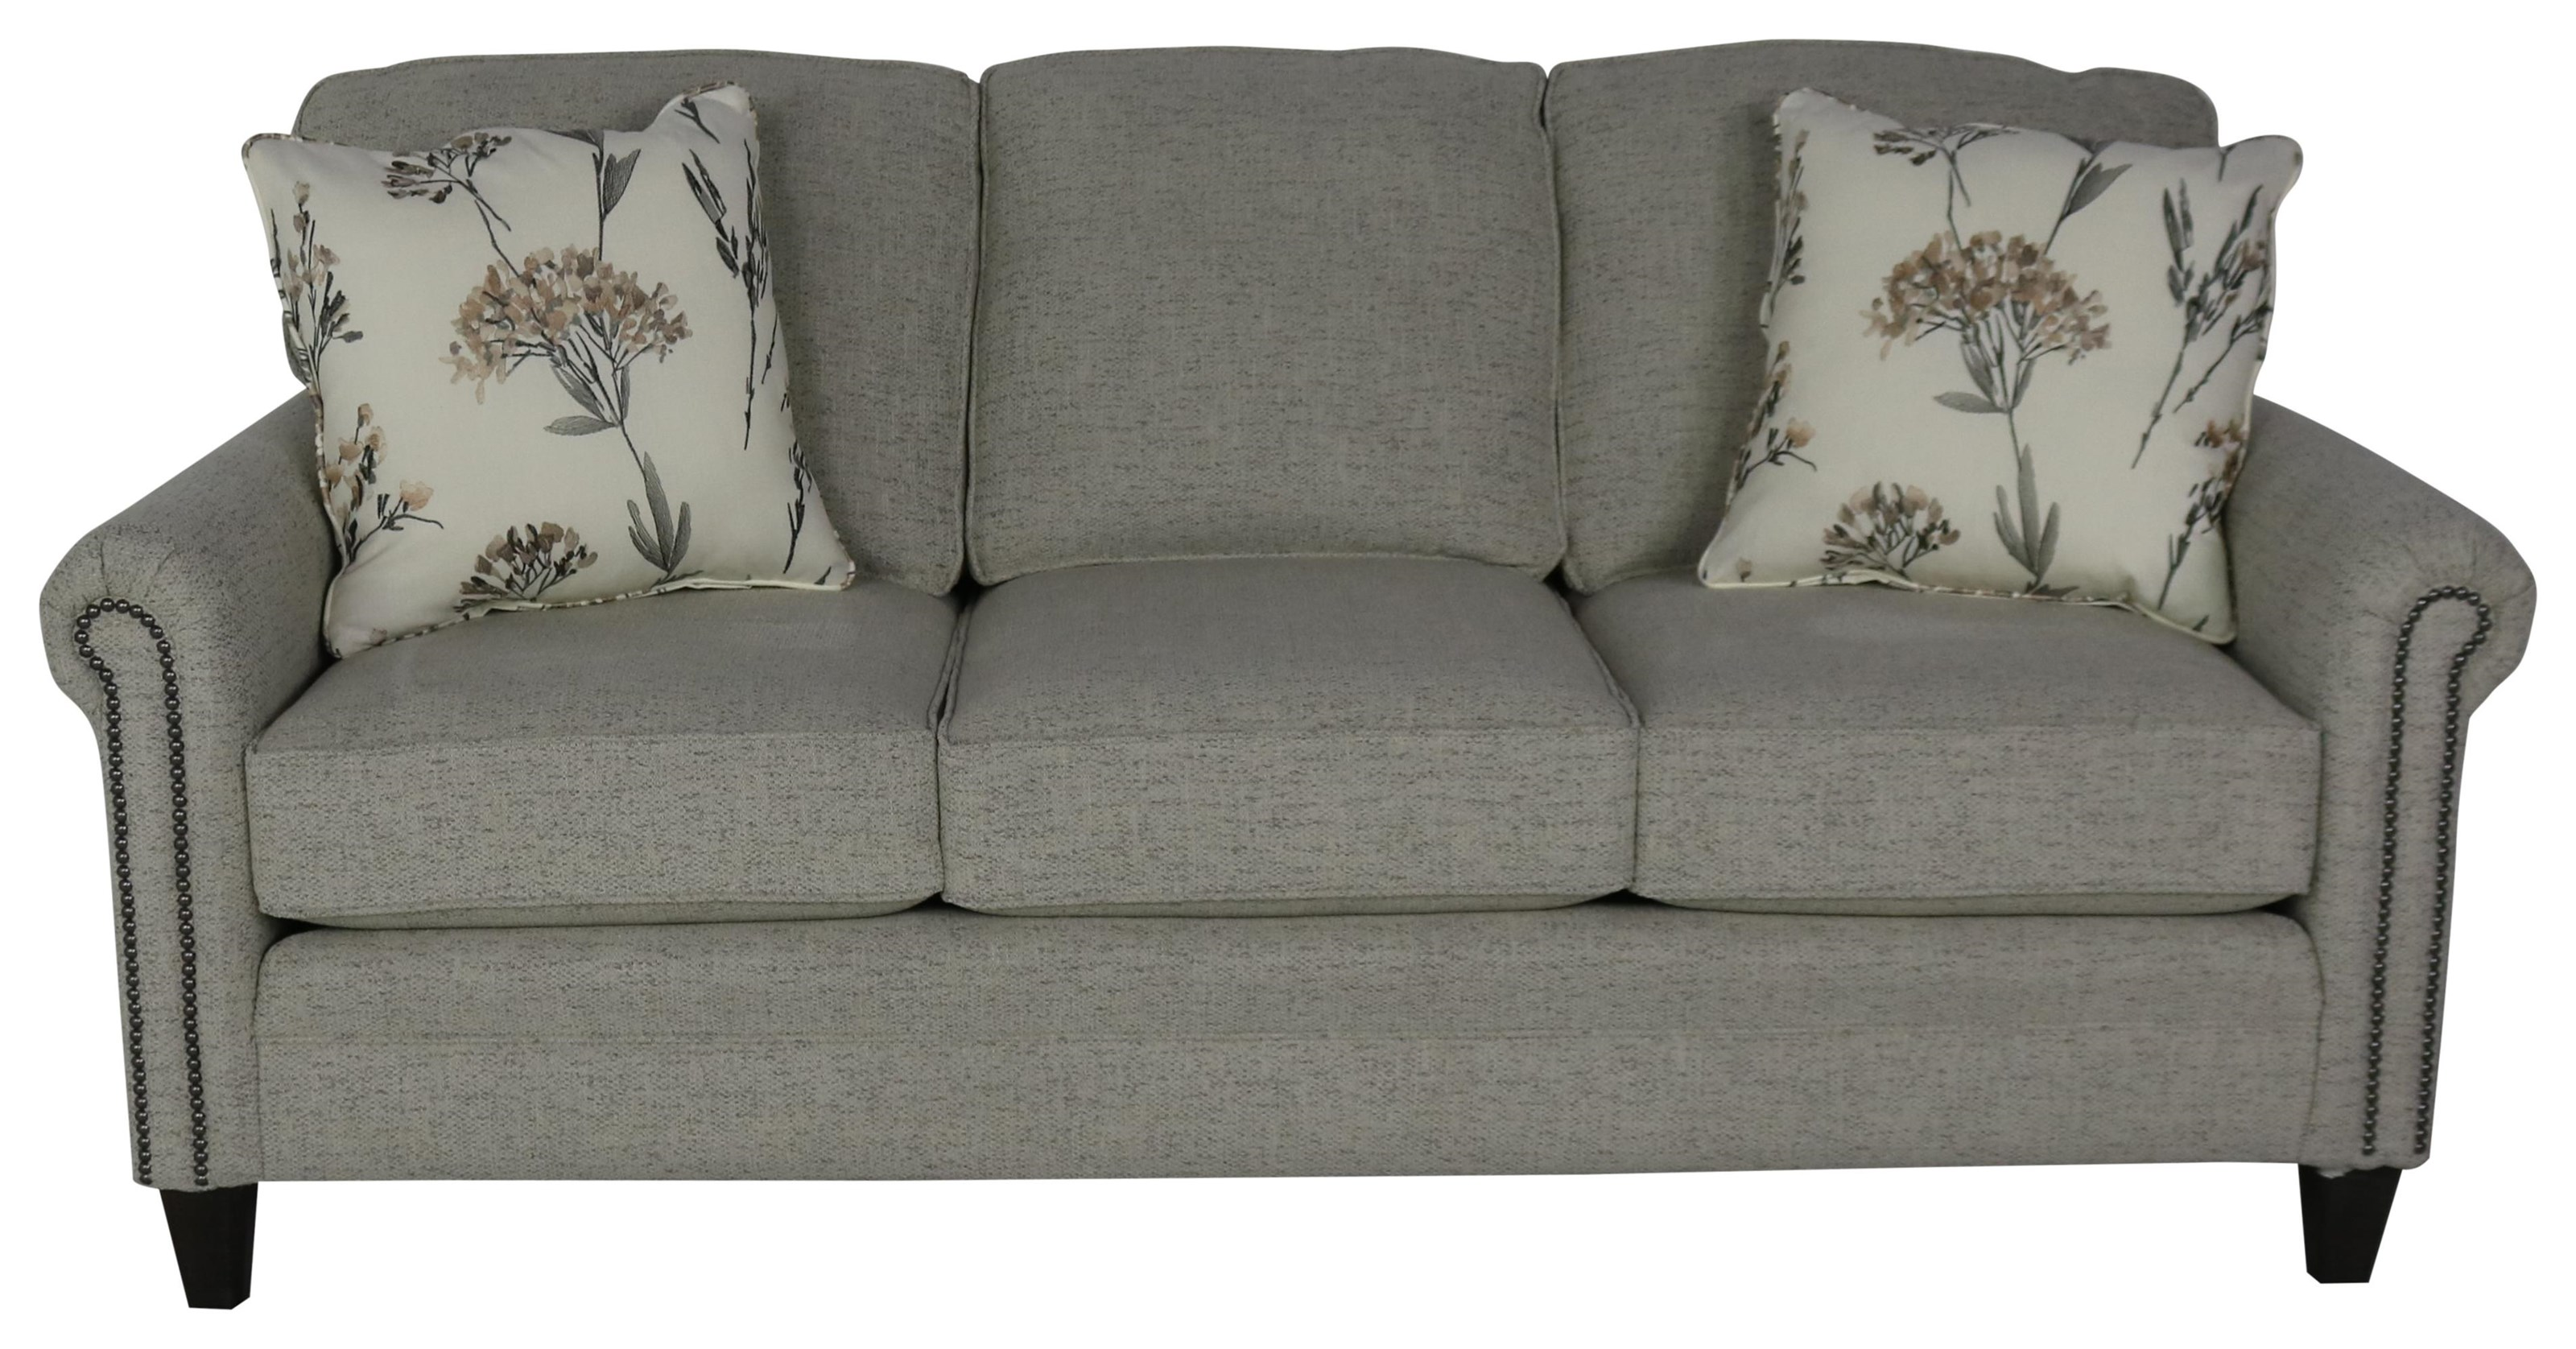 Build Your Own 3000 Series Customizable Sofa by Smith Brothers at Sprintz Furniture